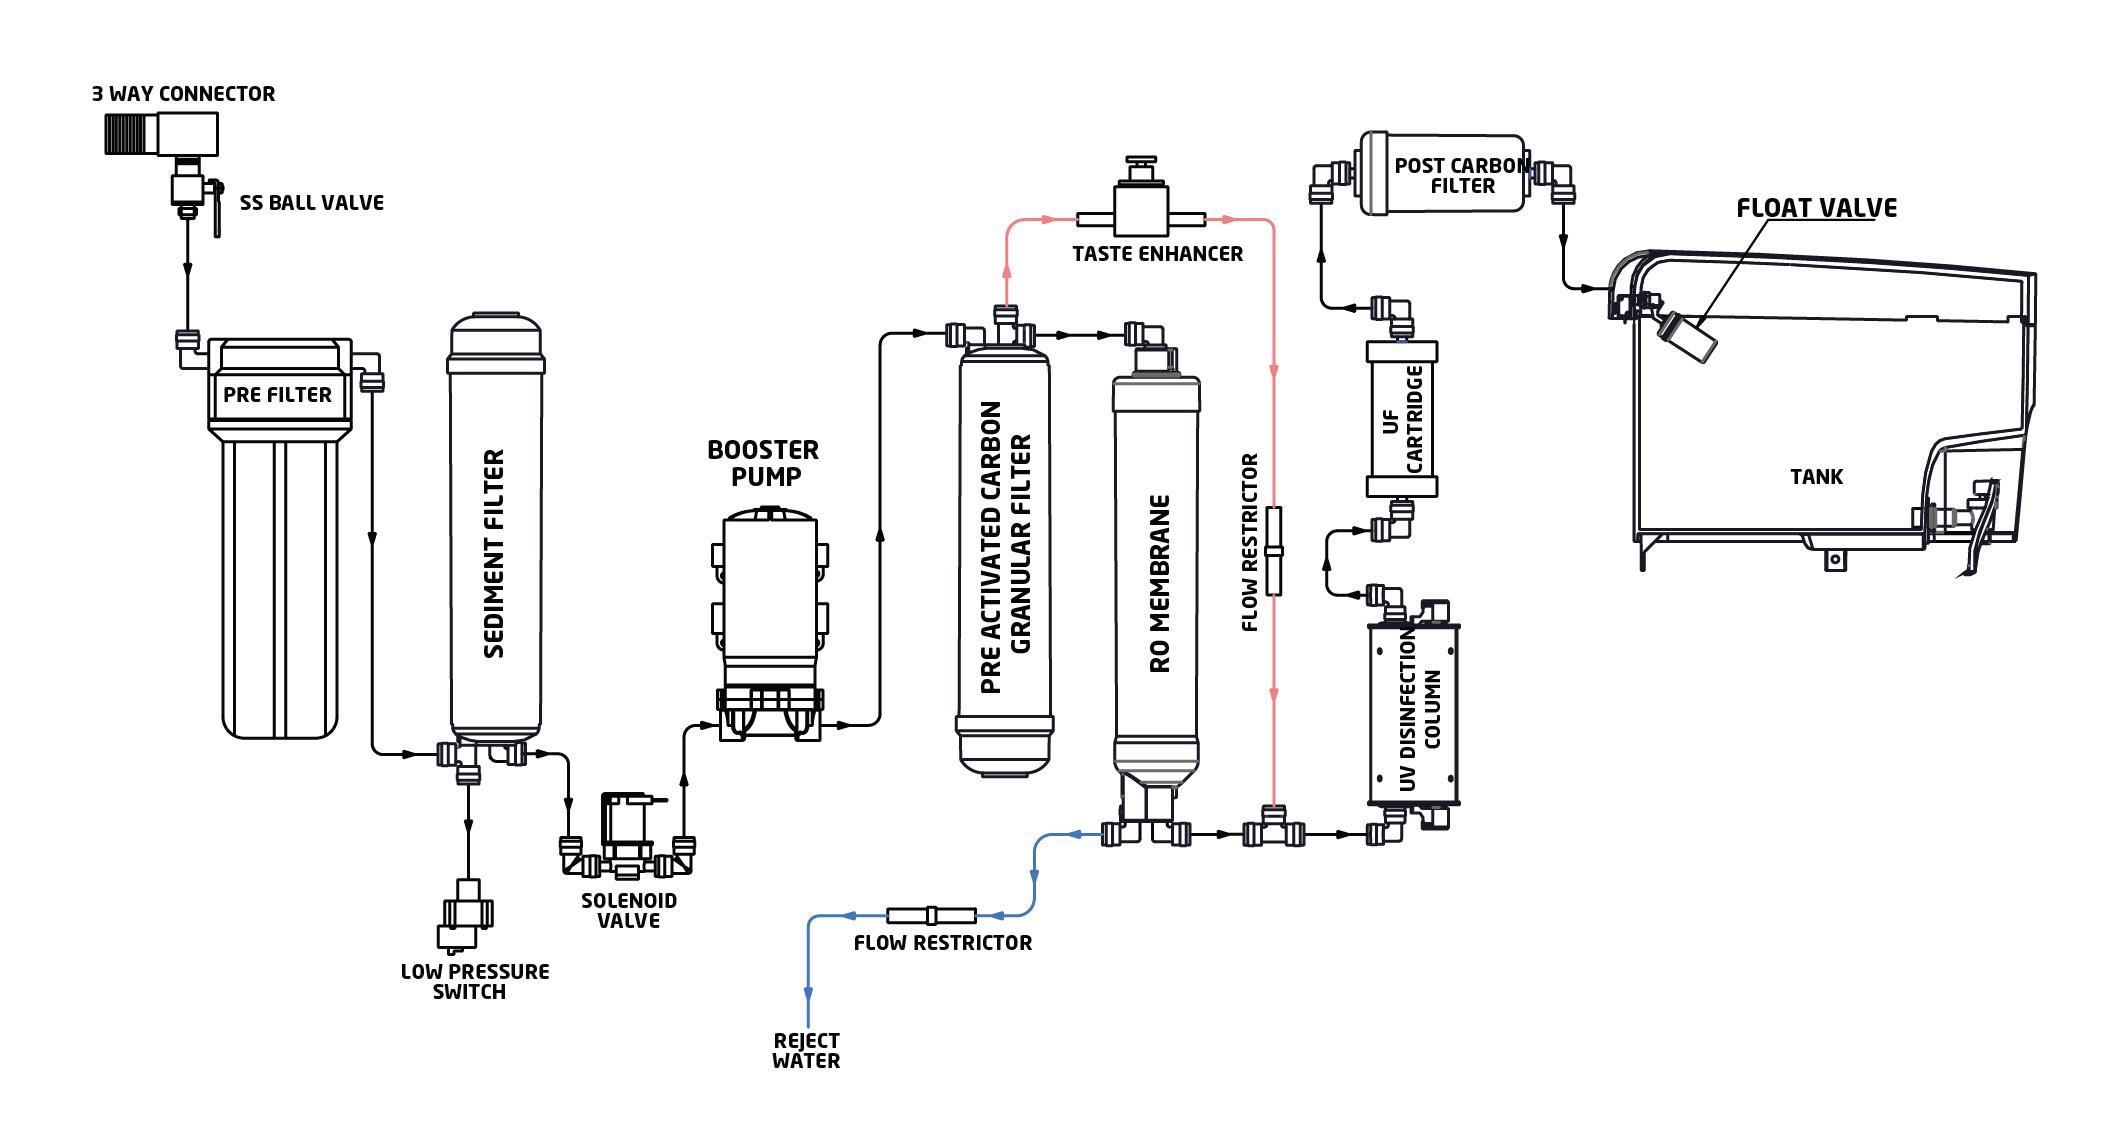 Koutei furthermore The Anatomy Of A Tree additionally Optimization Of Waste Plastics Gasification Process Using Aspen Plus besides 33558 further Enviromantal Poulation. on water process diagram